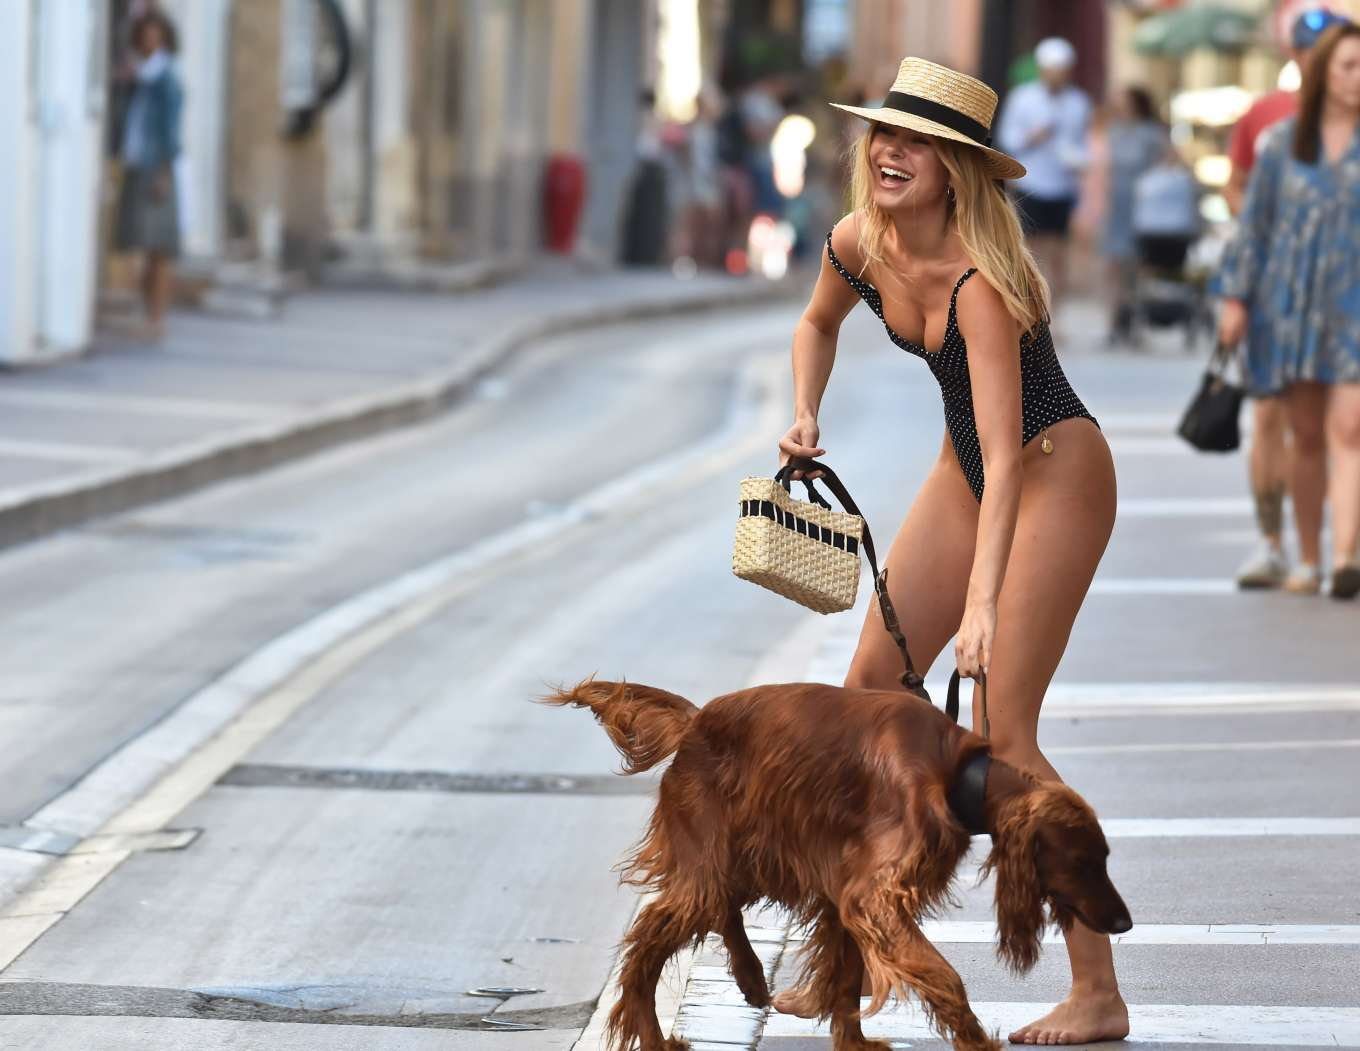 Kimberley Garner in Swimsuit on the Streets of St. Tropez August 2019